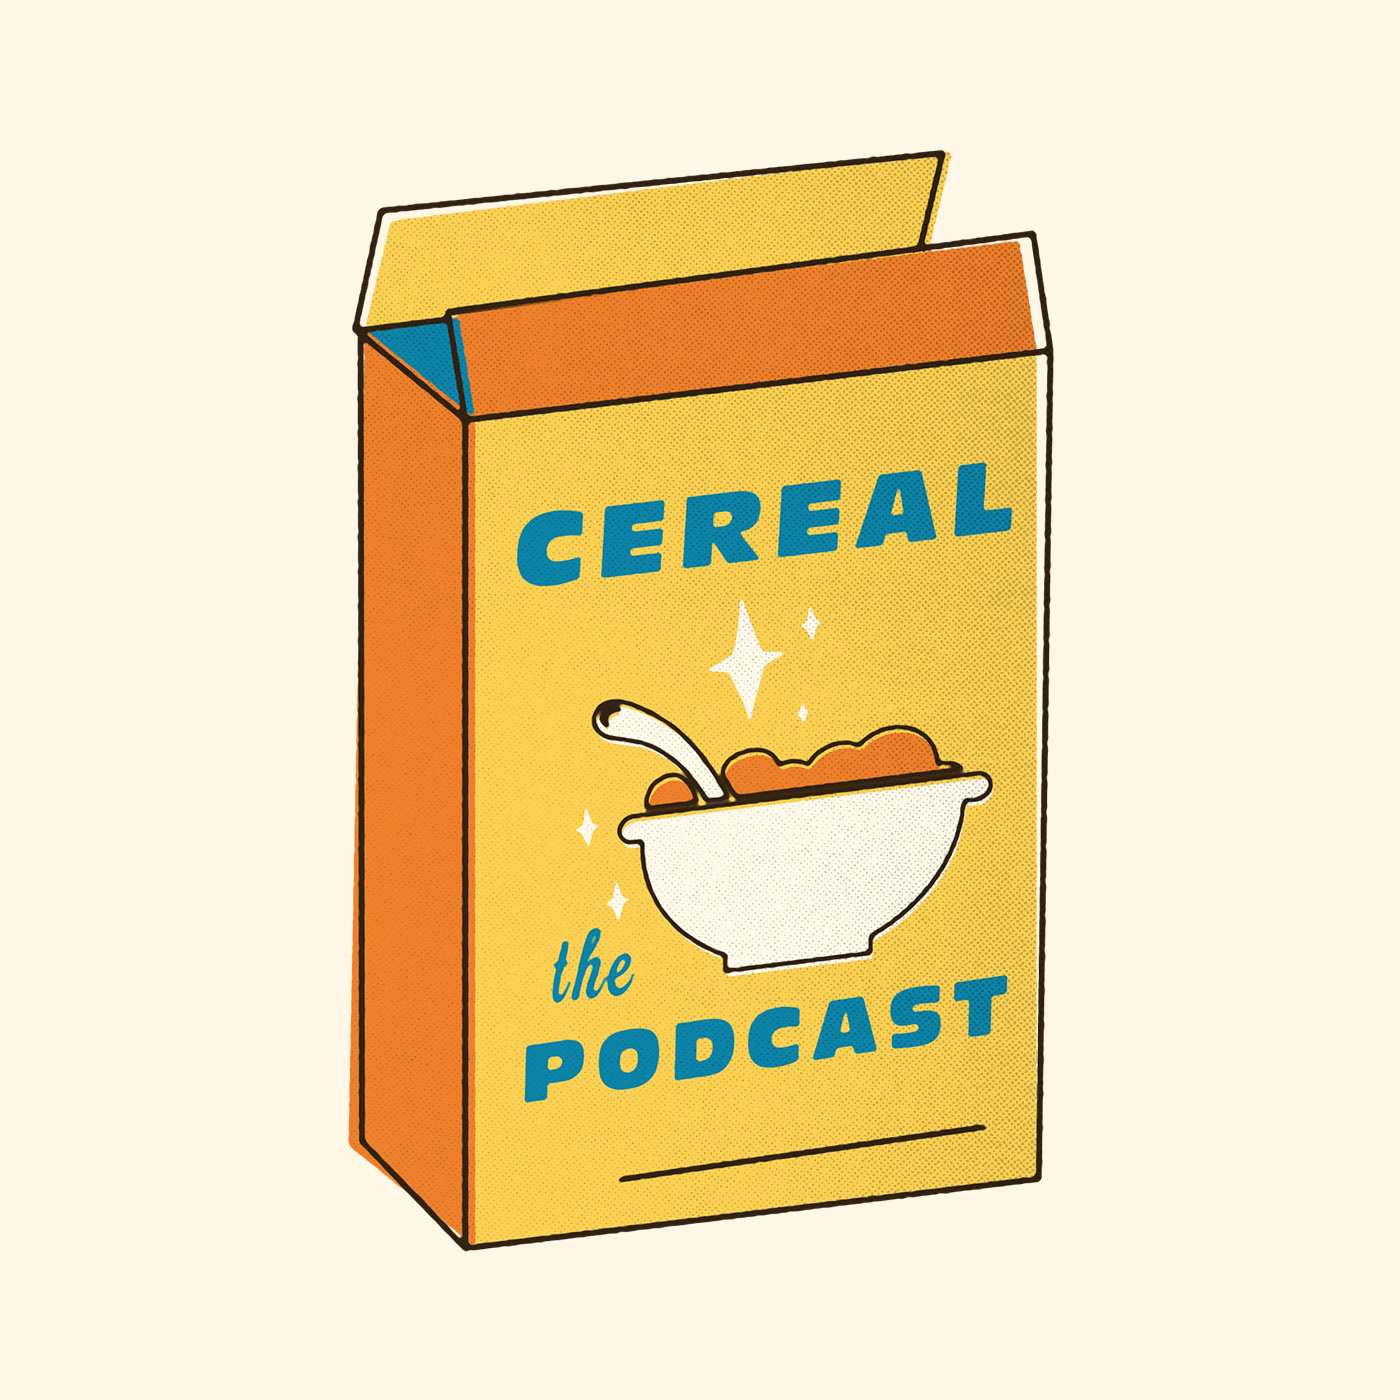 Cereal_logo_03